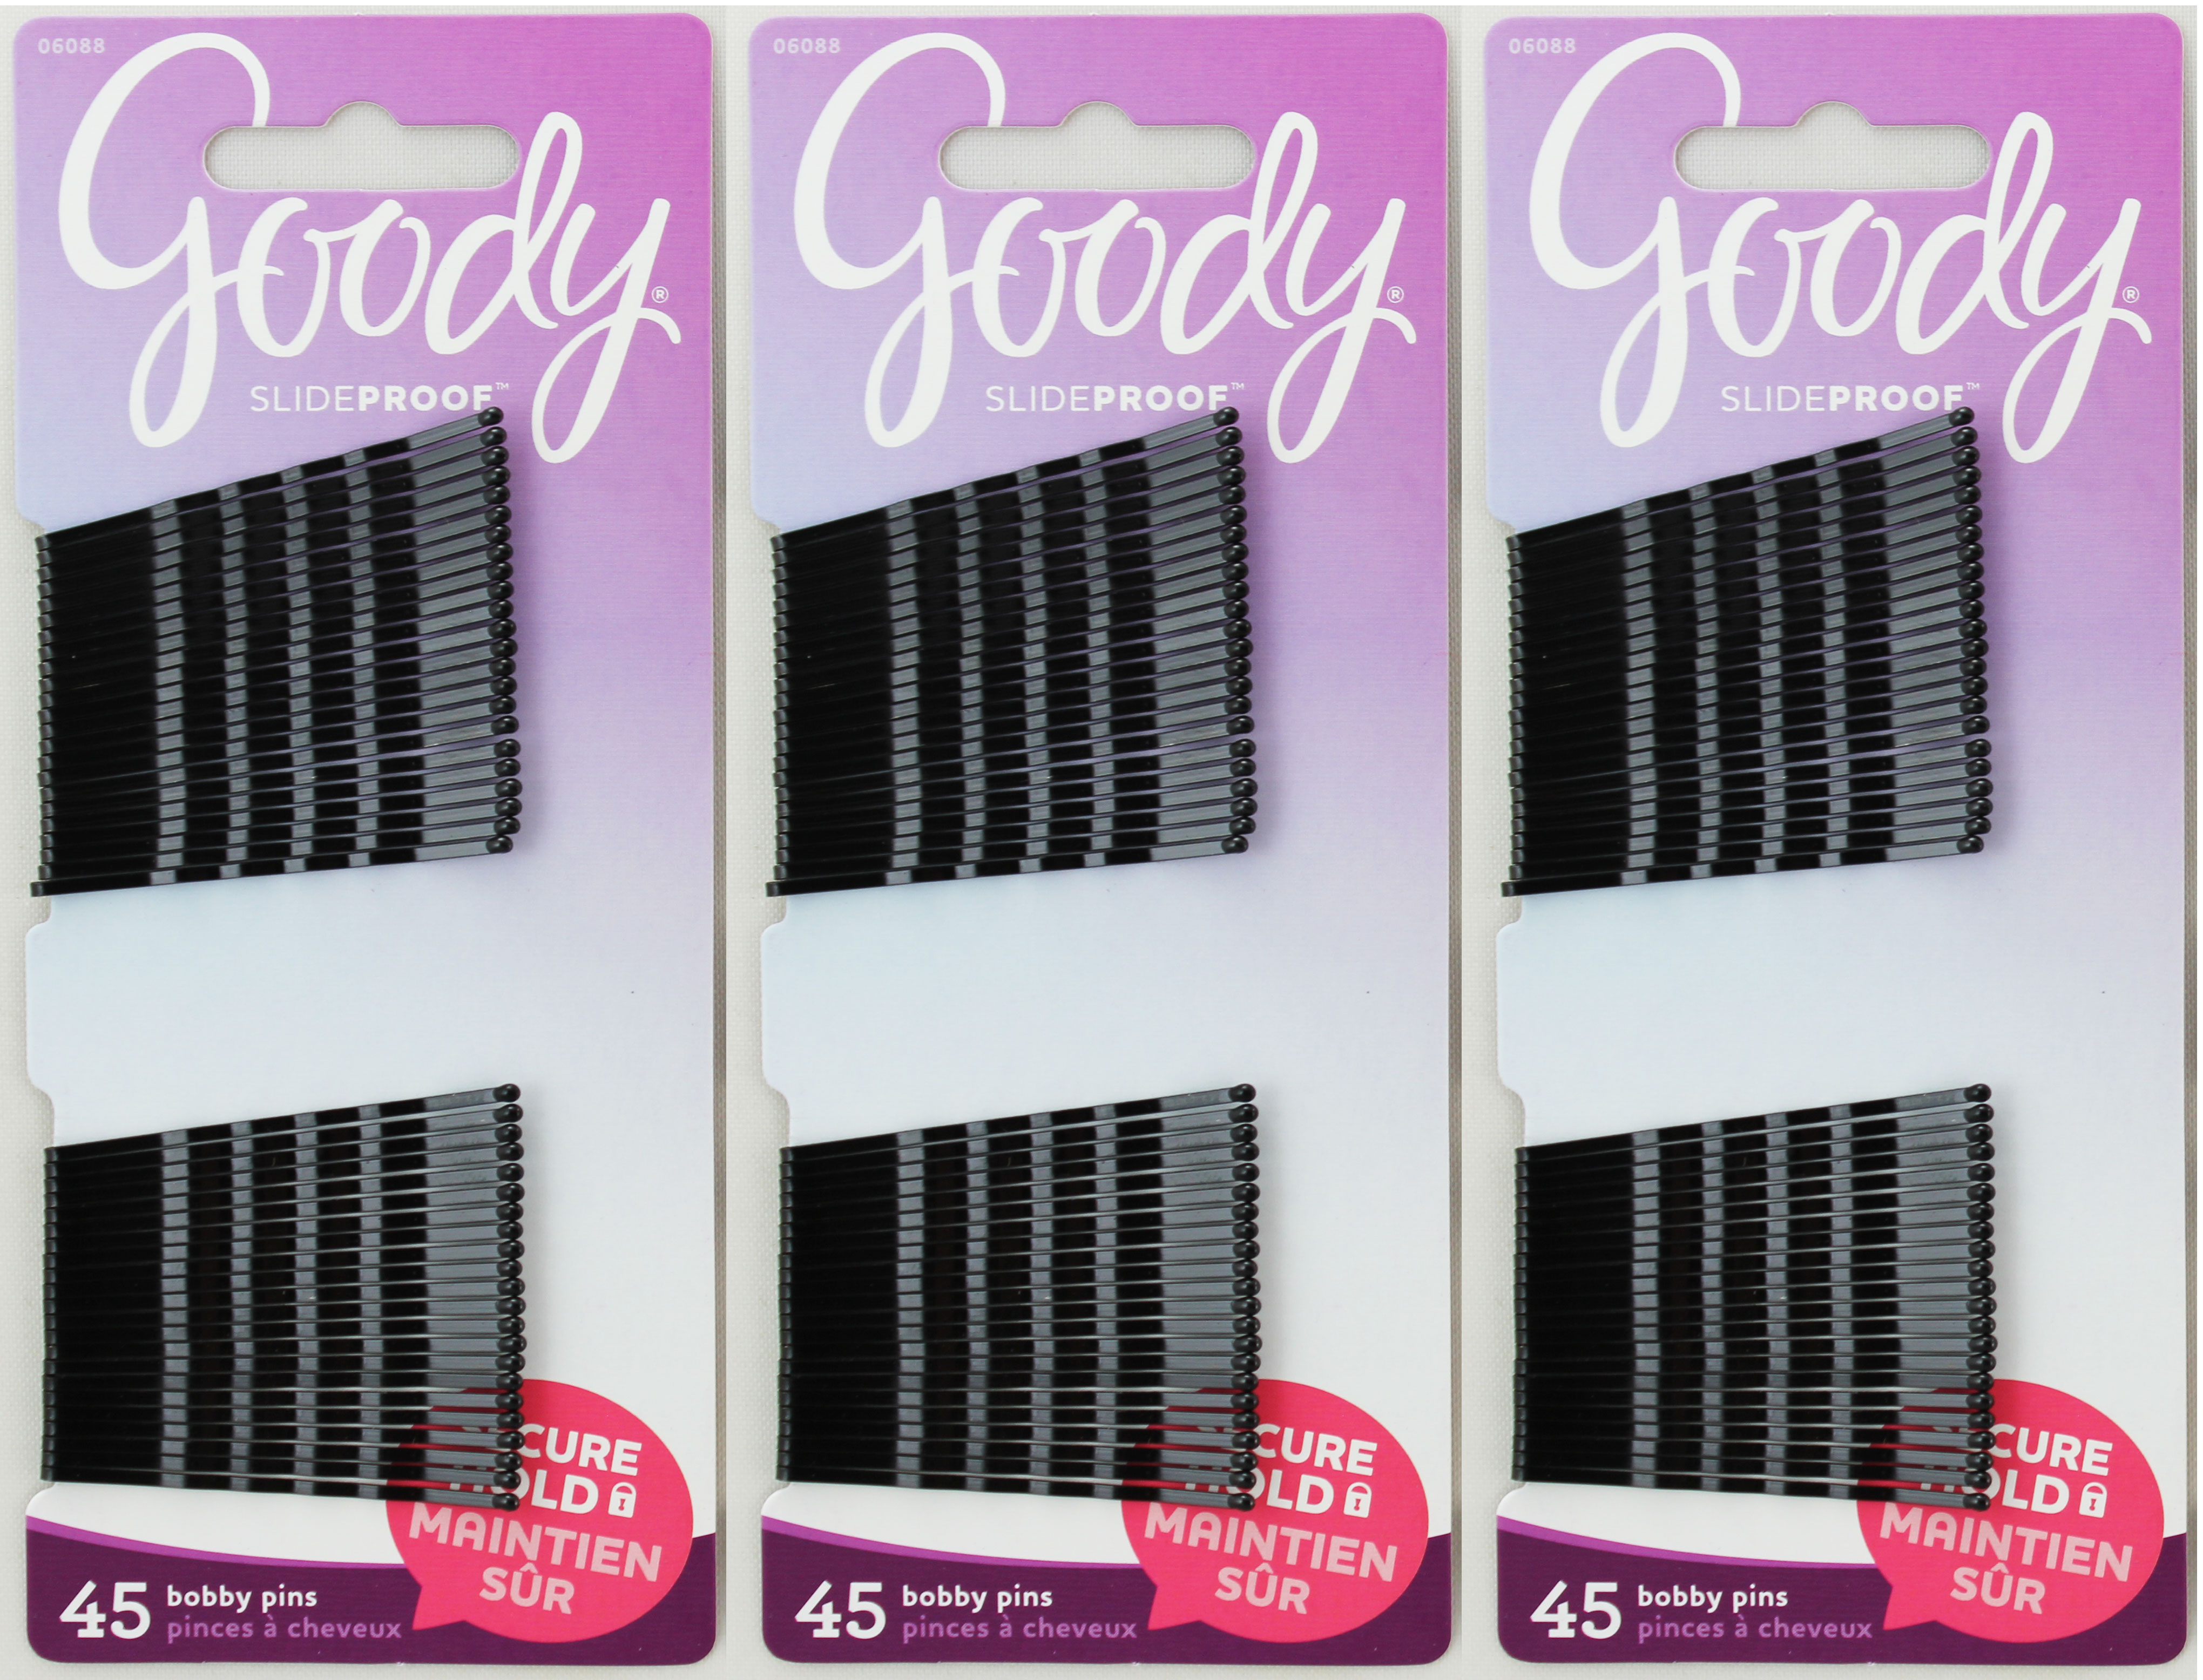 Goody Bobby Pins Secure Hold Black 45ct